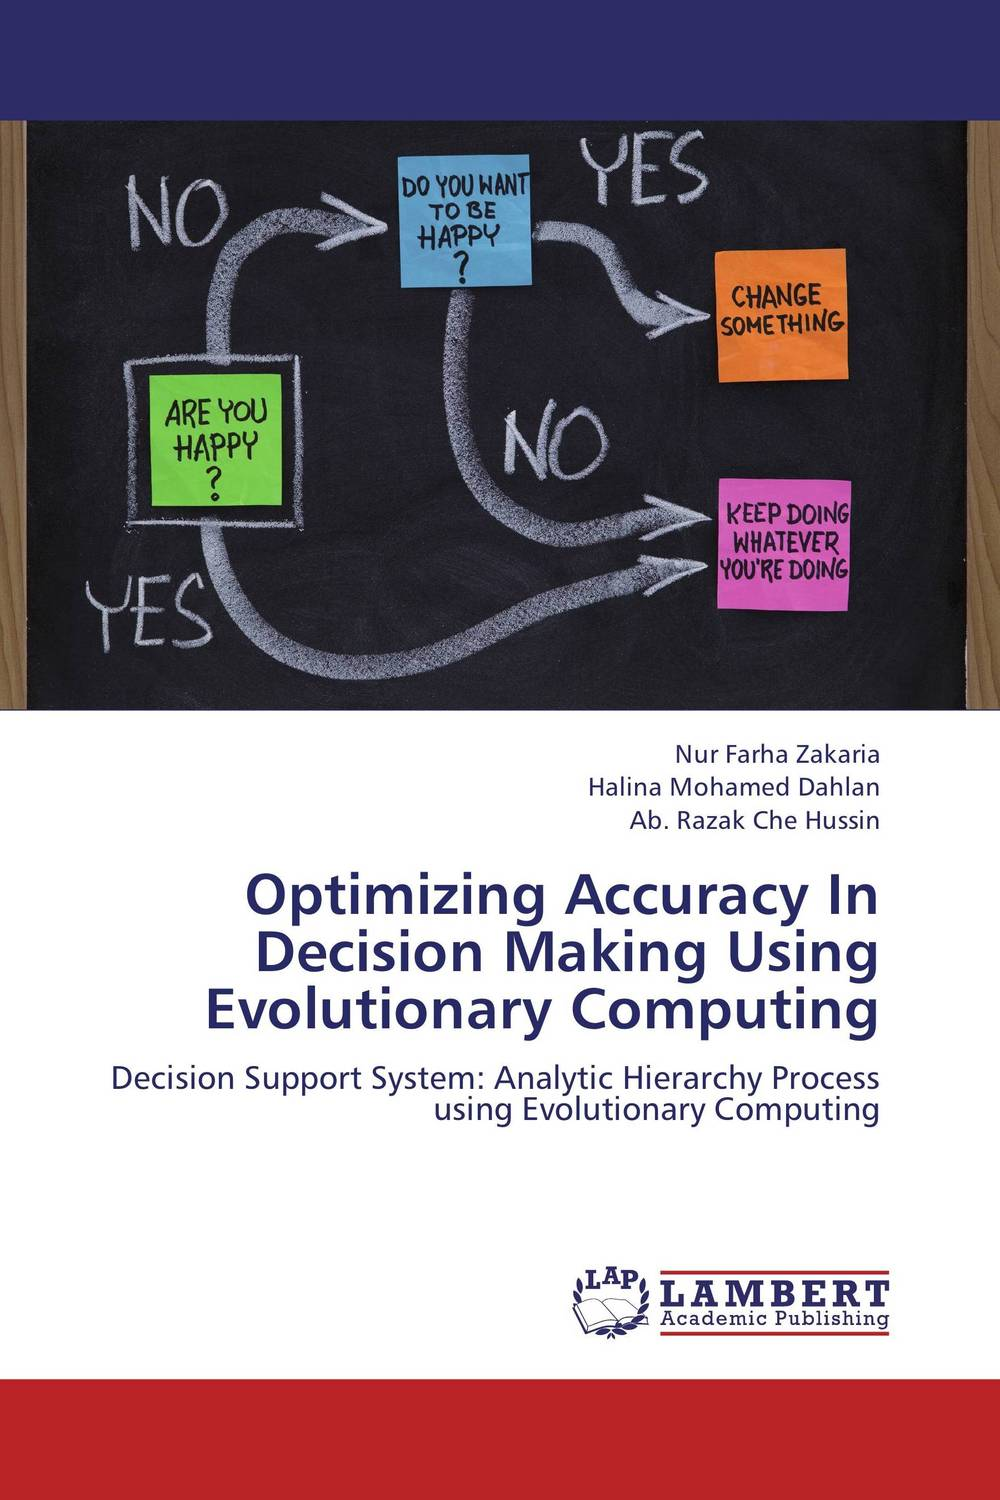 Optimizing Accuracy In Decision Making Using Evolutionary Computing